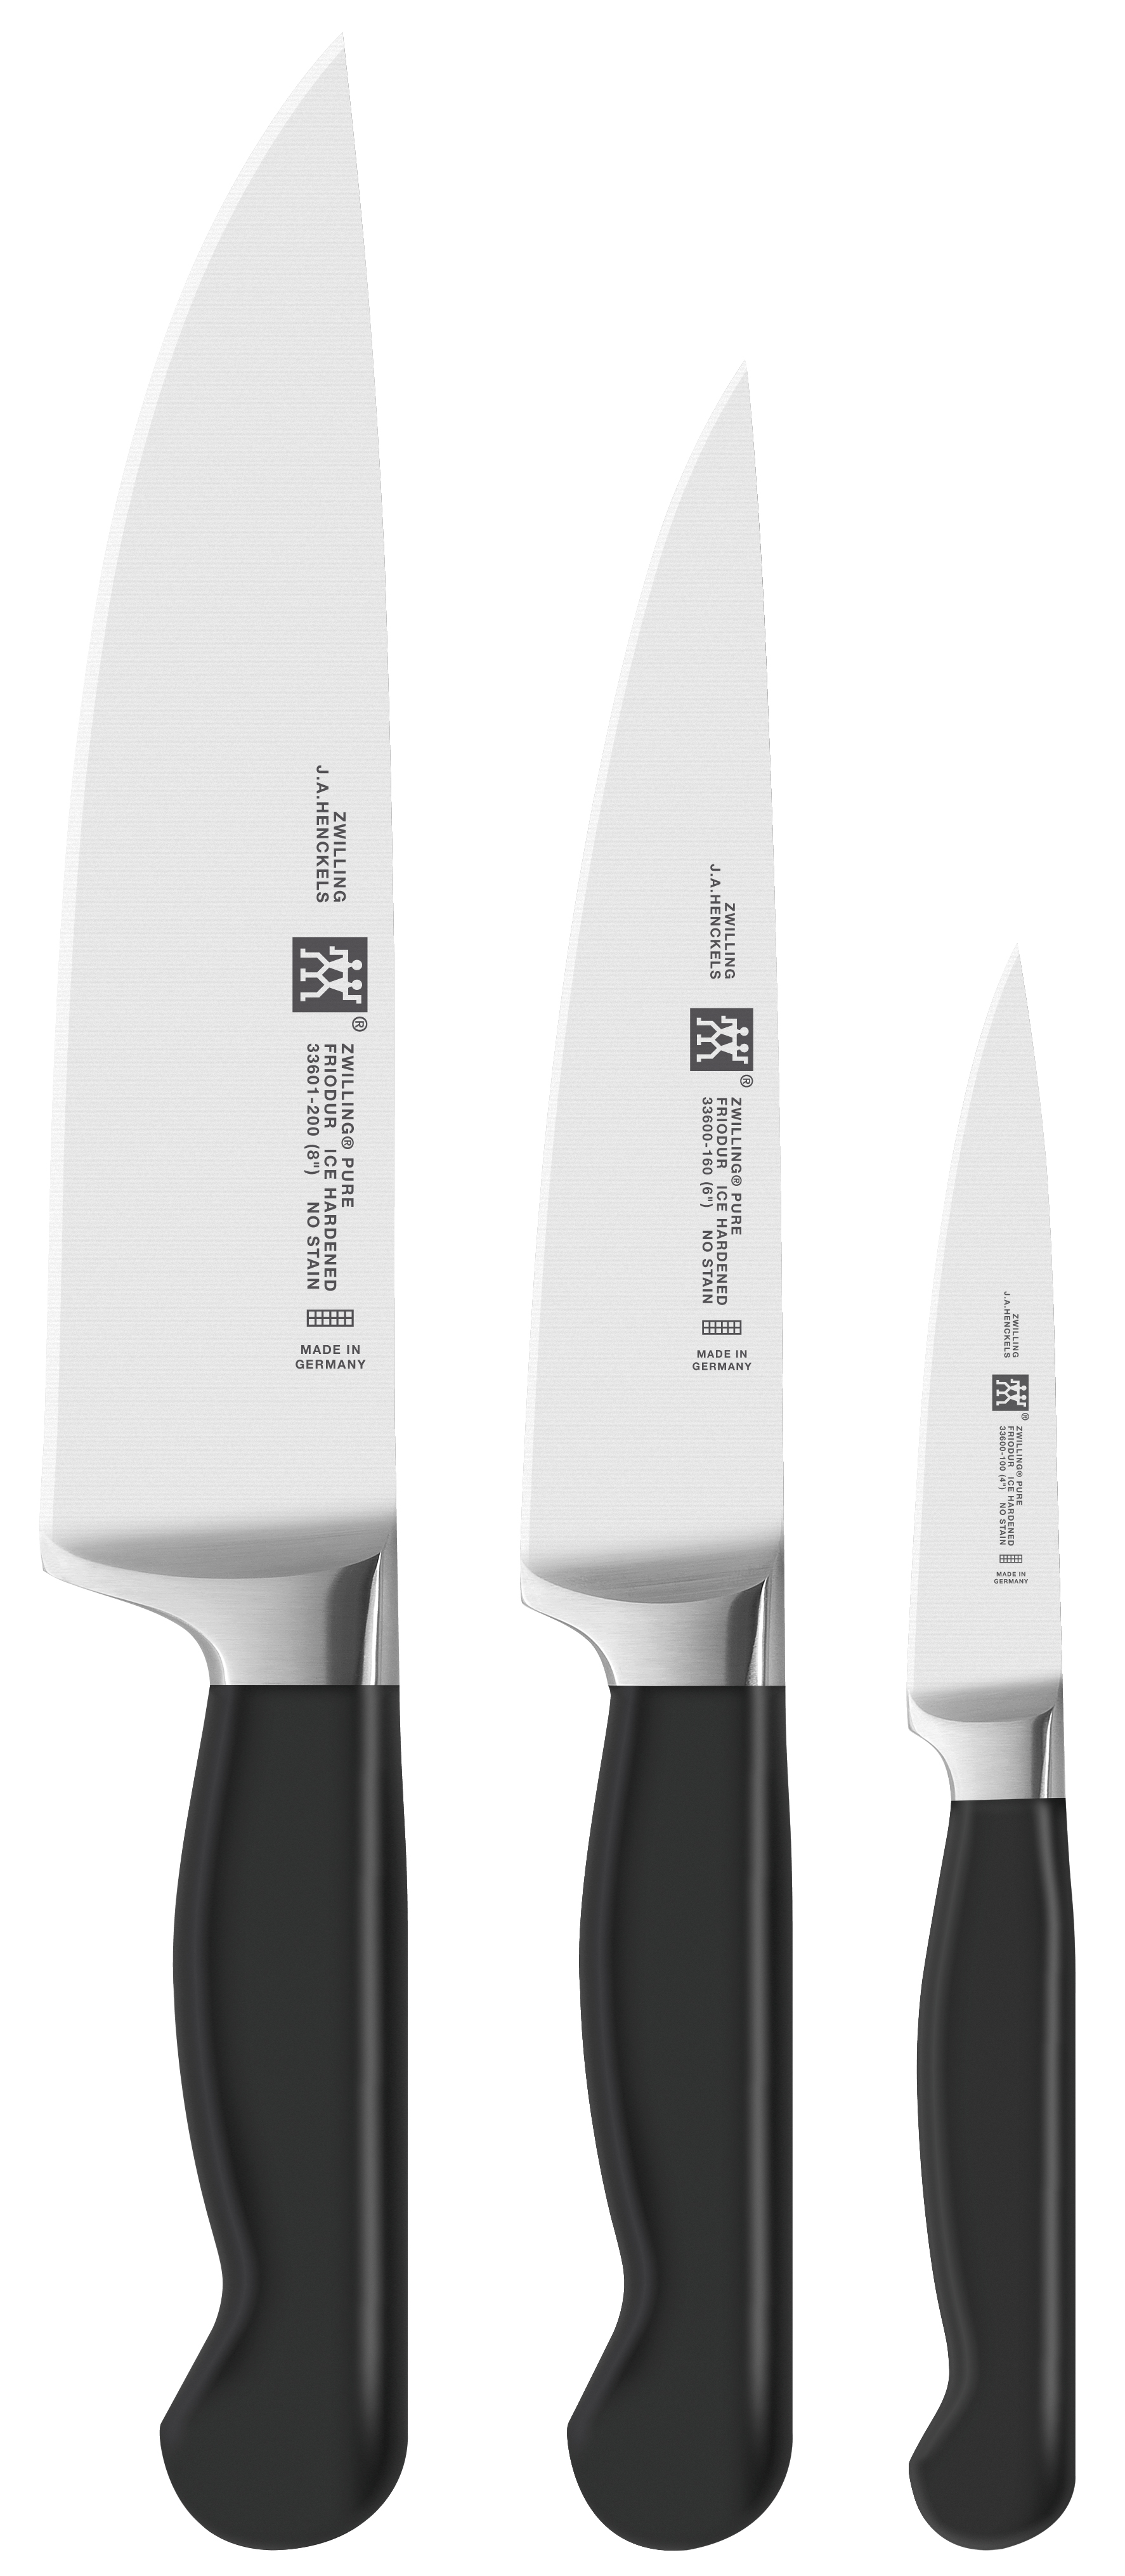 Zwilling: Pure Messerset, 3-tlg.